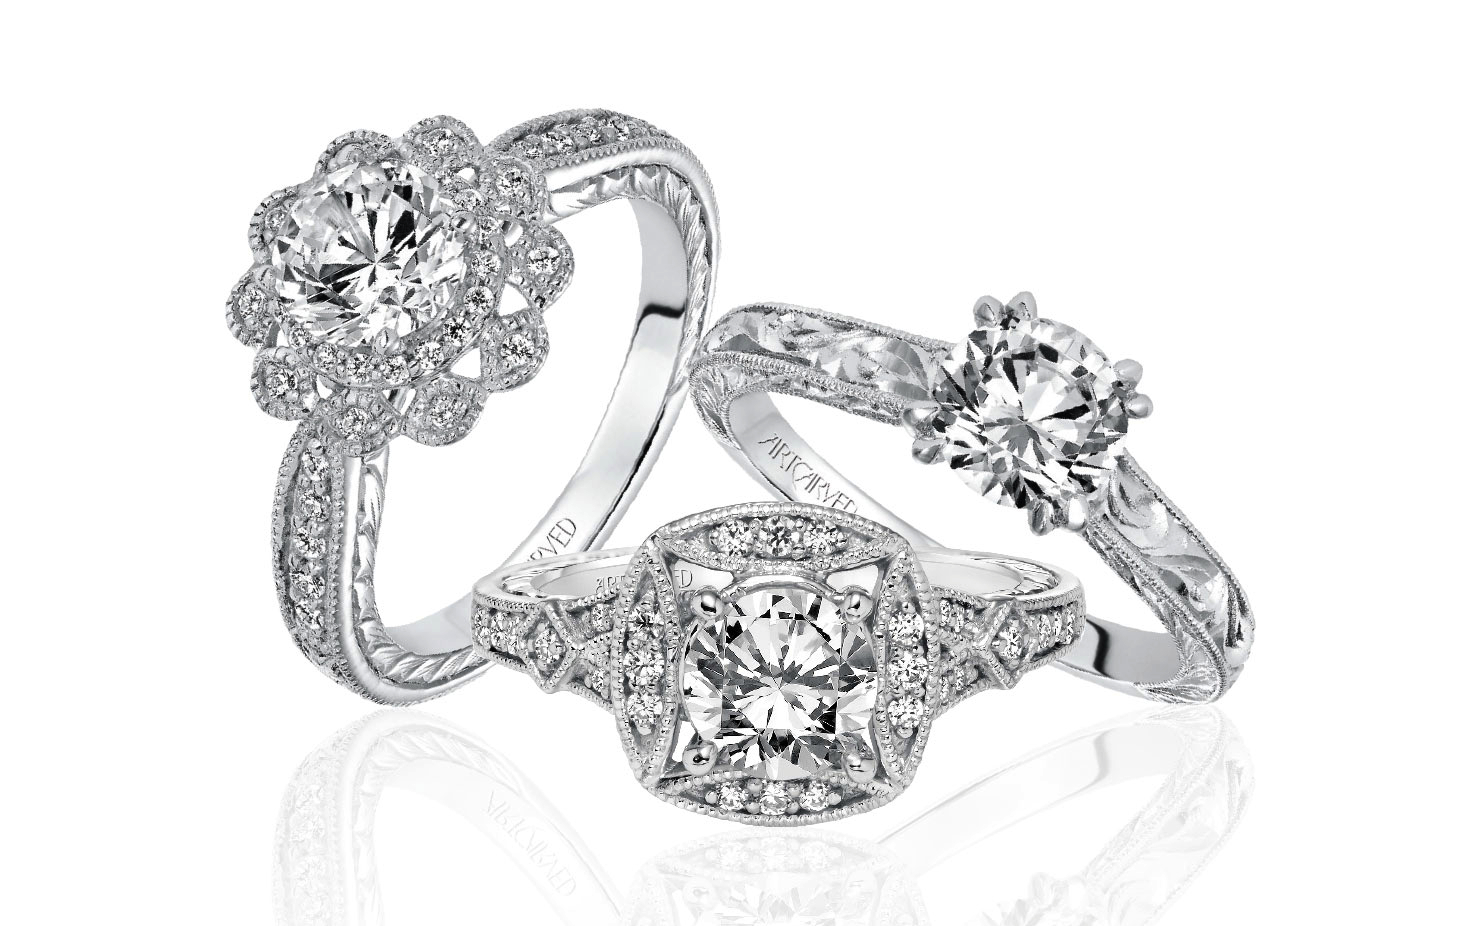 Image 3 of Win $5,000 Towards an Engagement Ring or Wedding Bands from ArtCarved